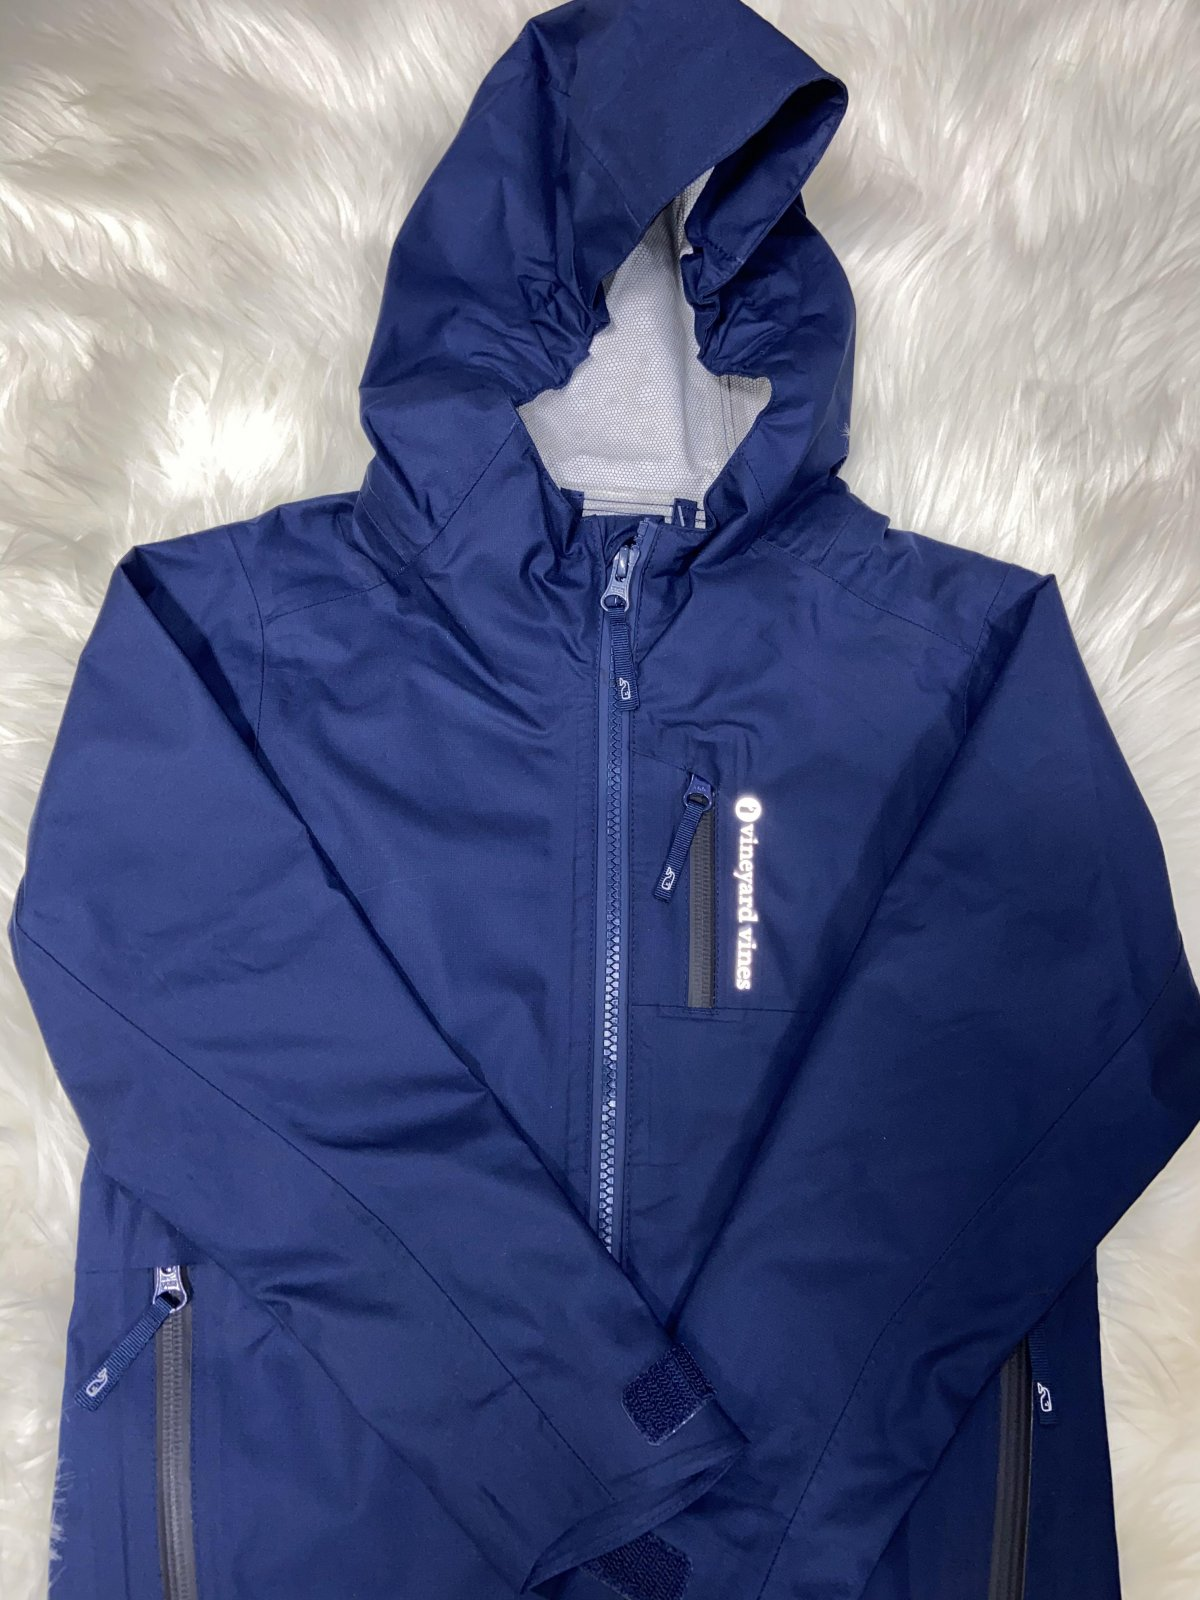 VINEYARD VINES BOYS WINDBREAKER SIZE 5